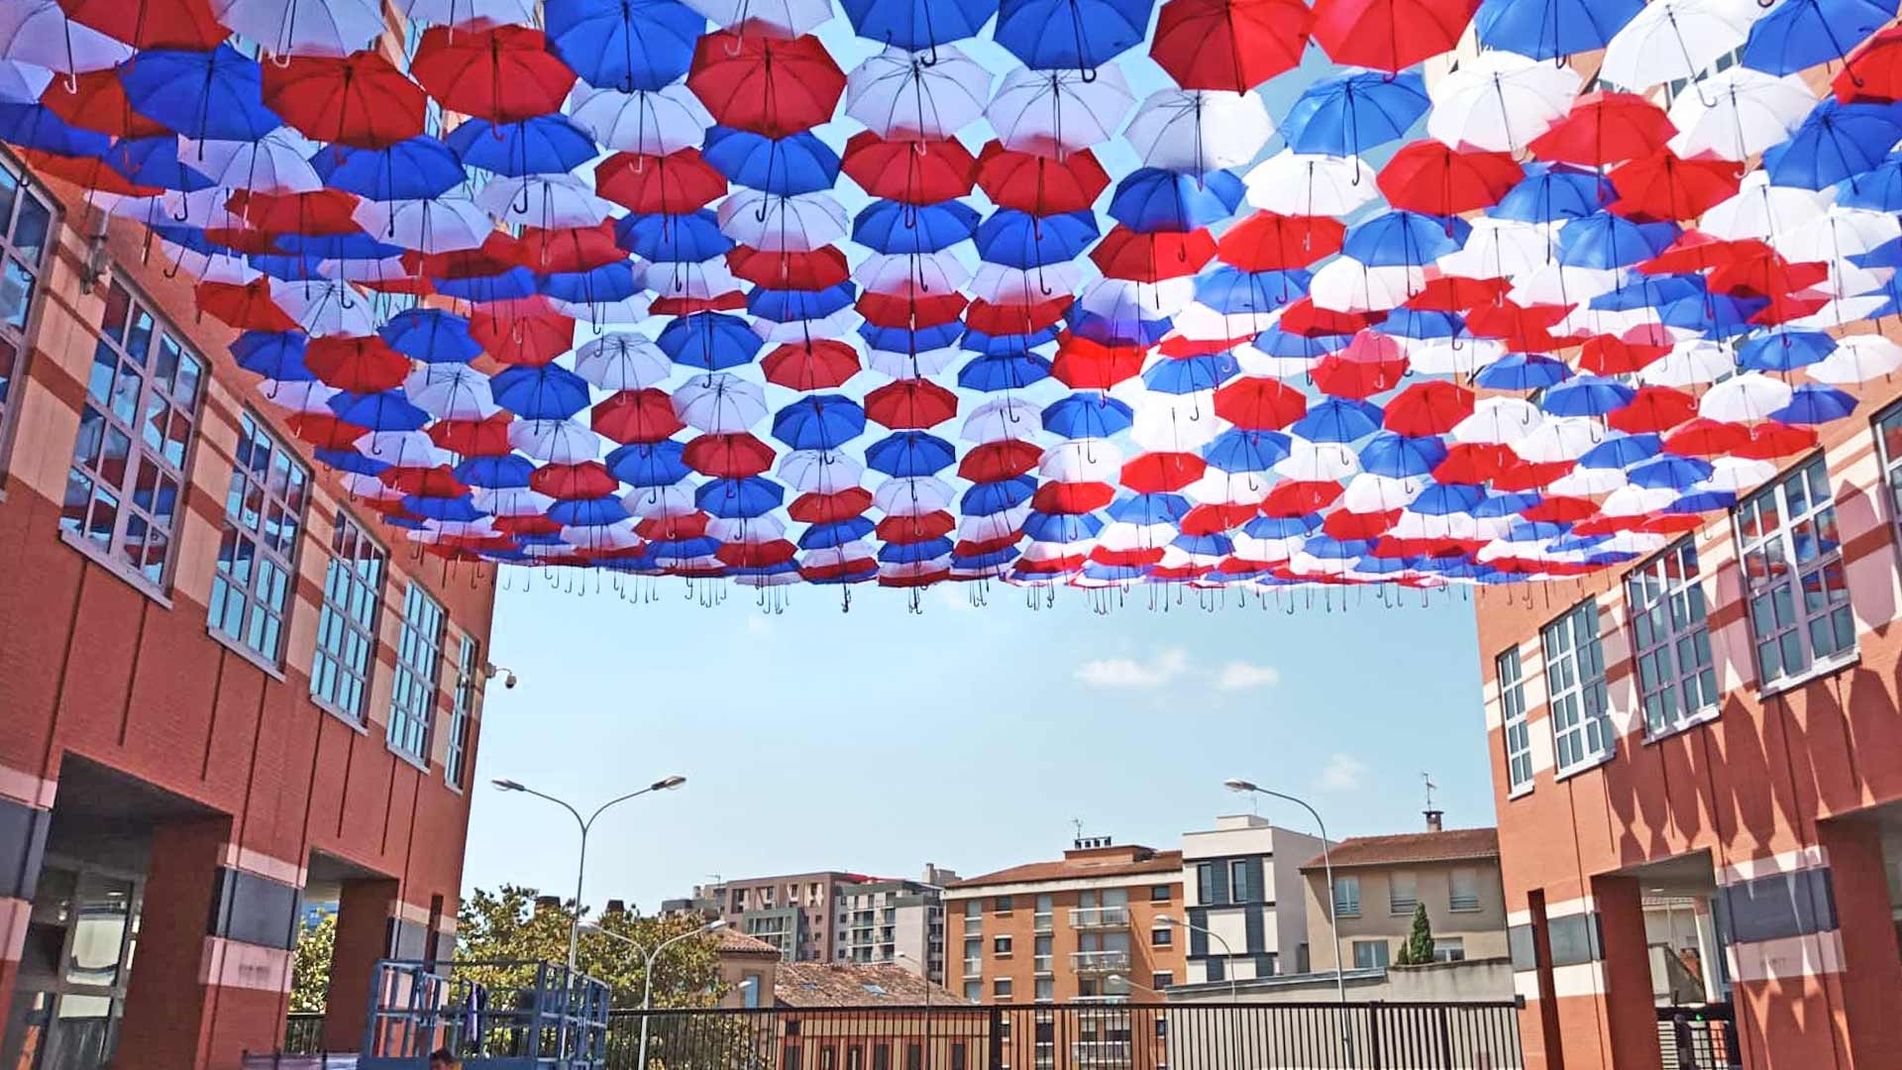 Umbrella Sky Project - Toulouse'19